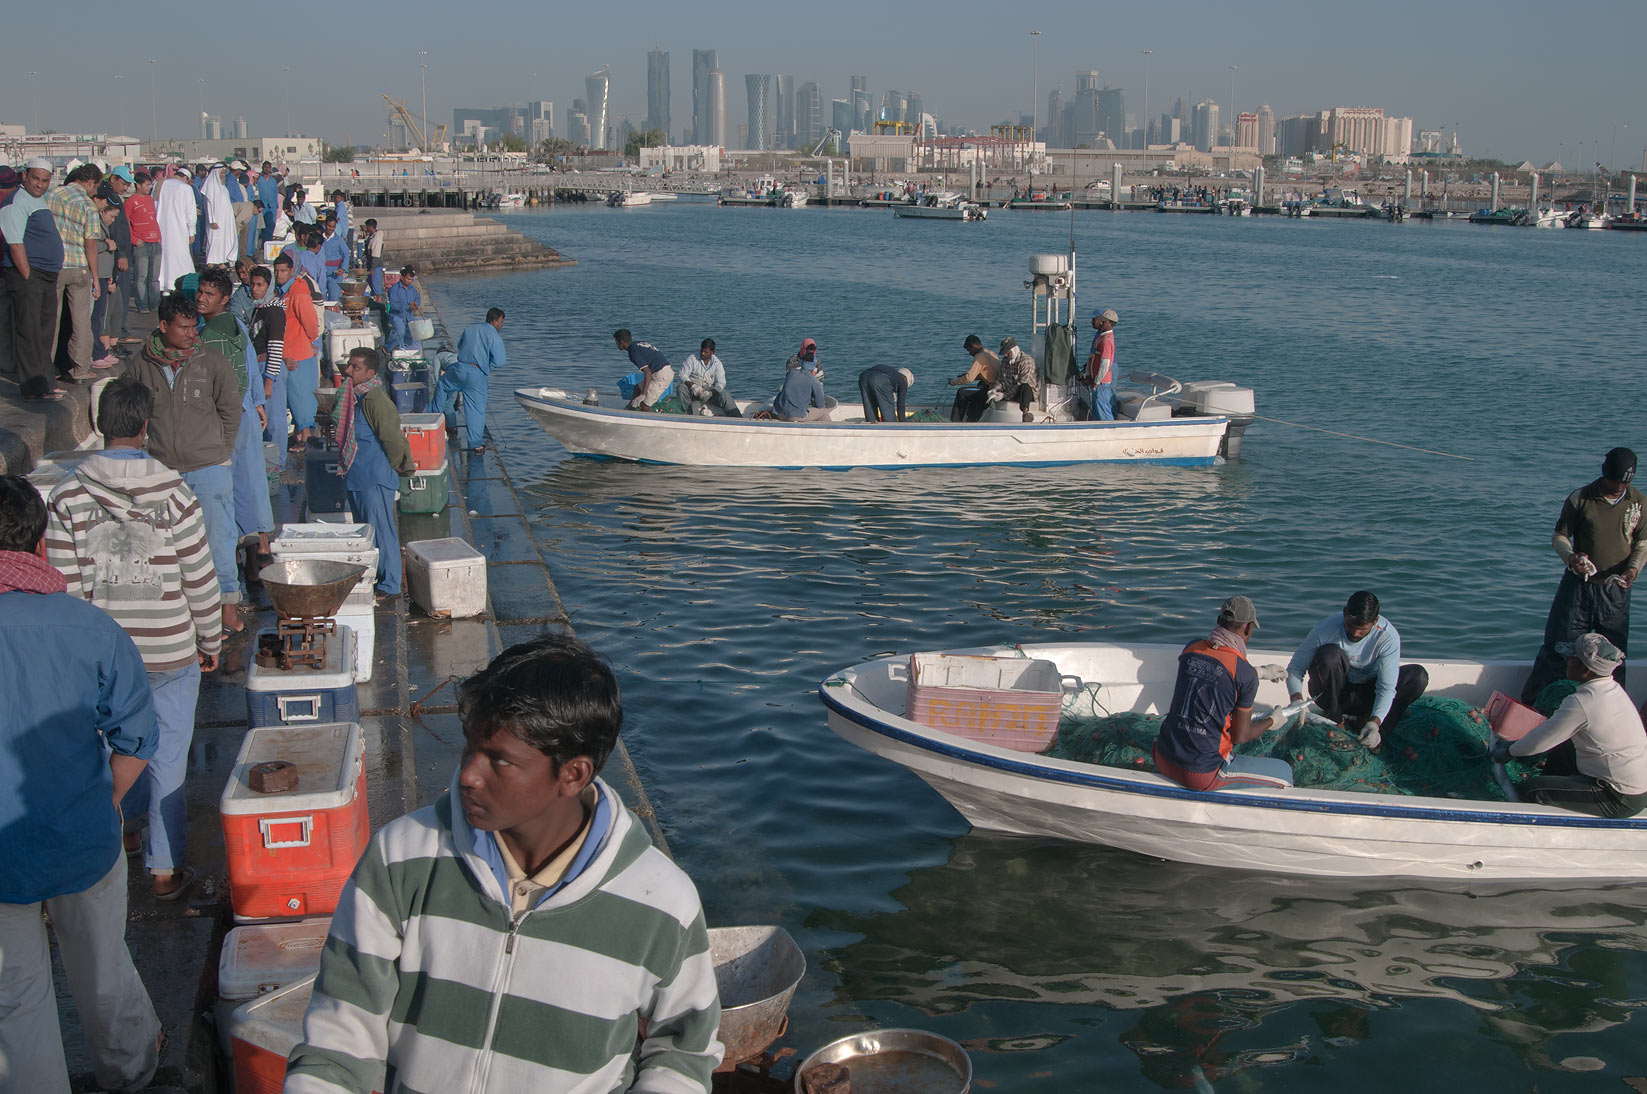 Boats at Corniche Fresh Fish Sold Market. Doha, Qatar